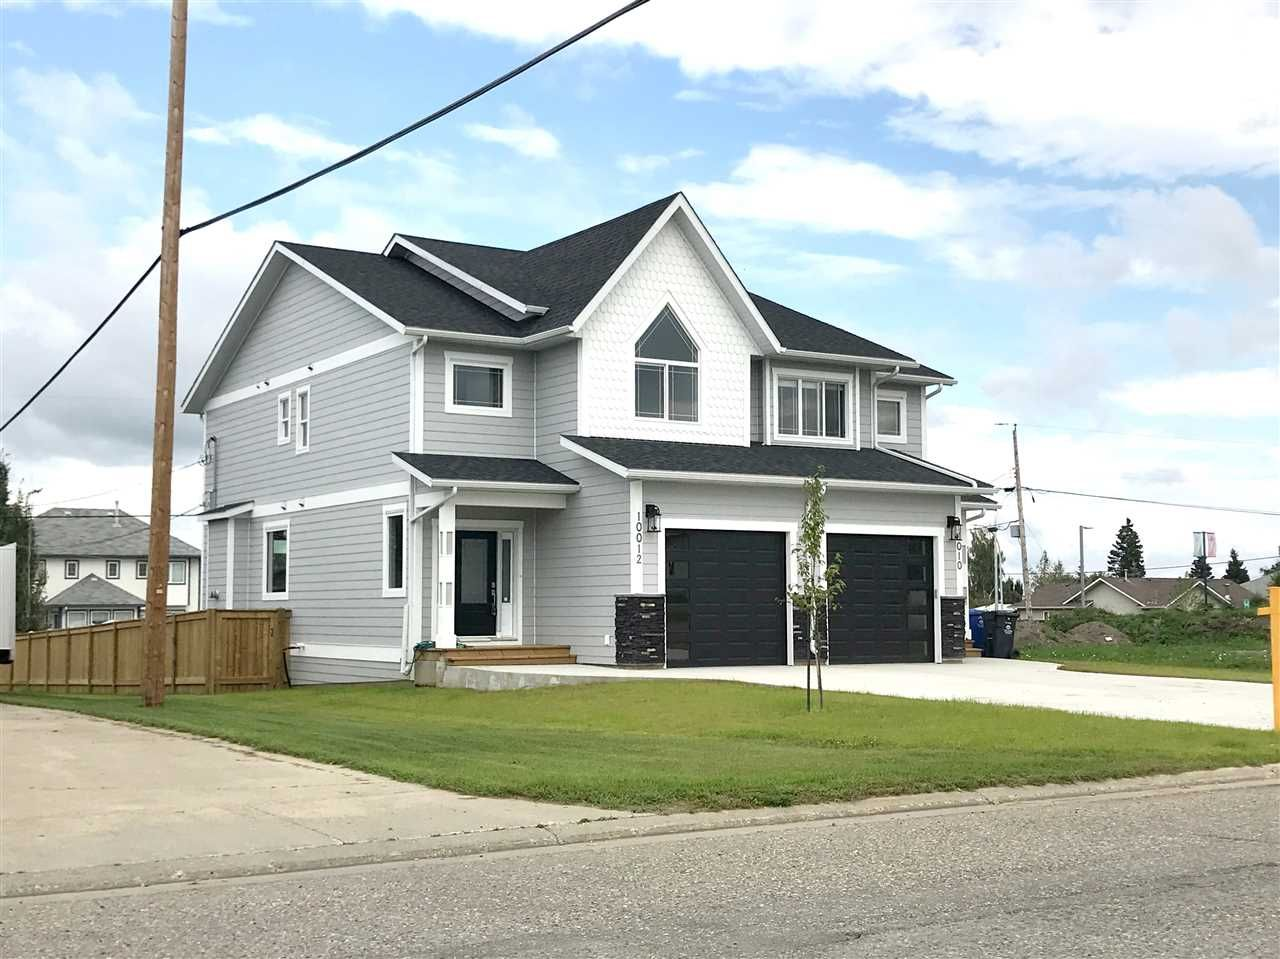 Main Photo: 10012 111 AVENUE in : Fort St. John - City NW Condo for sale : MLS®# R2244375